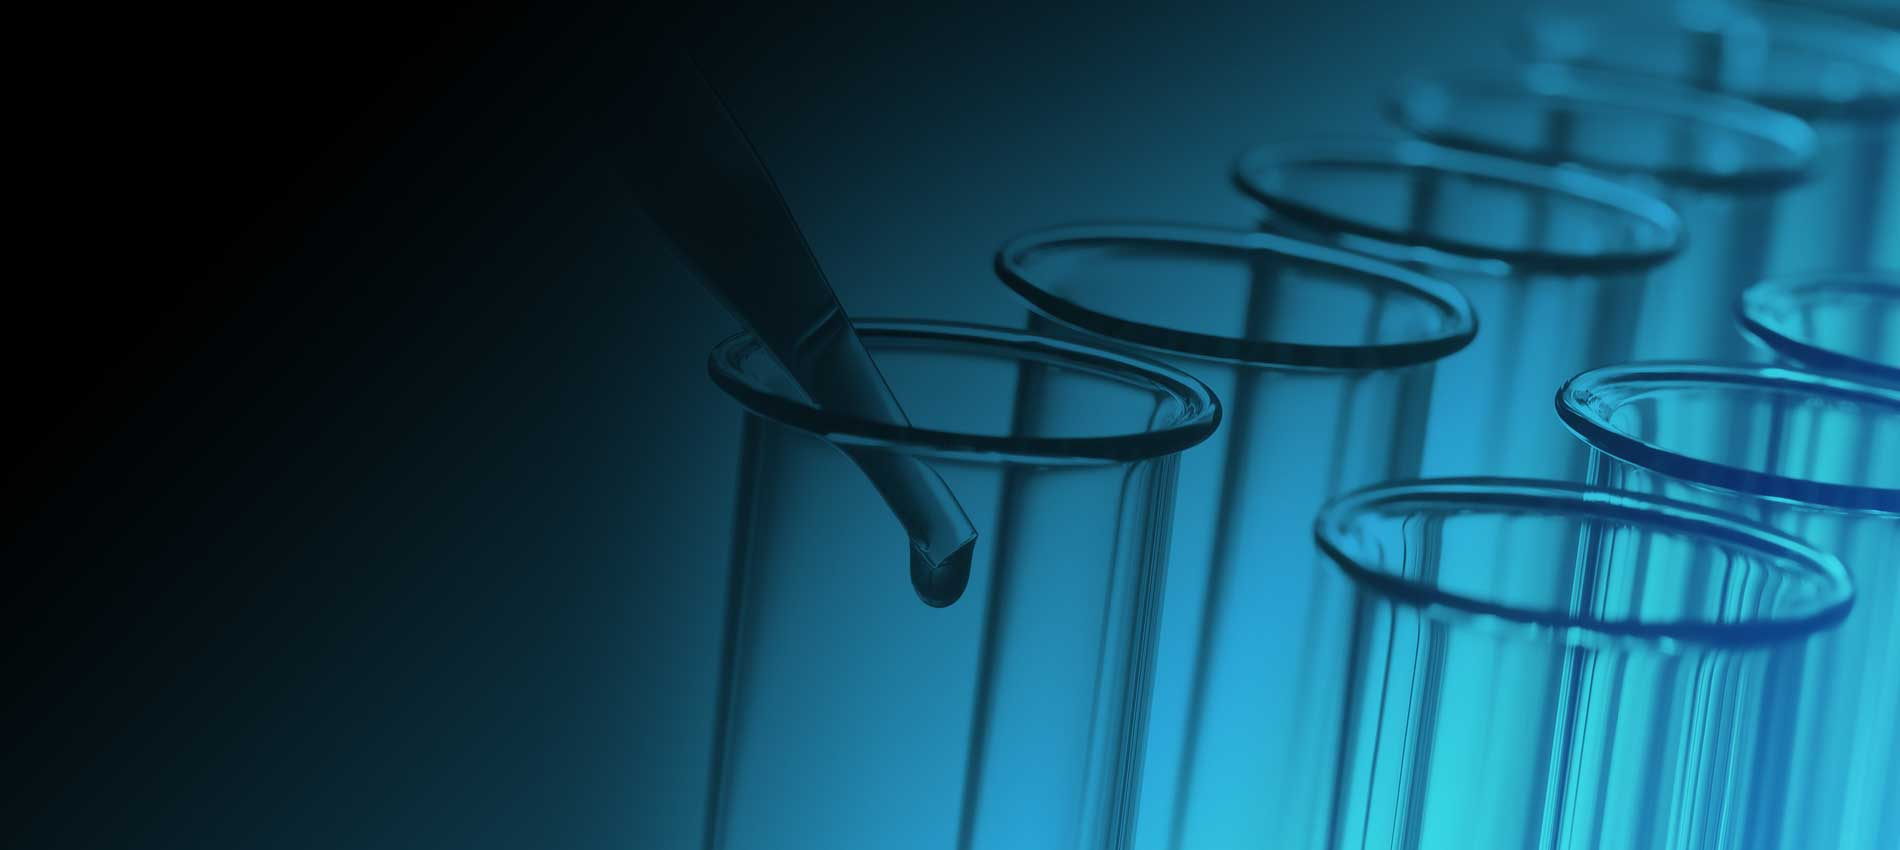 Pipette and Test Tube Gradient Blue Background